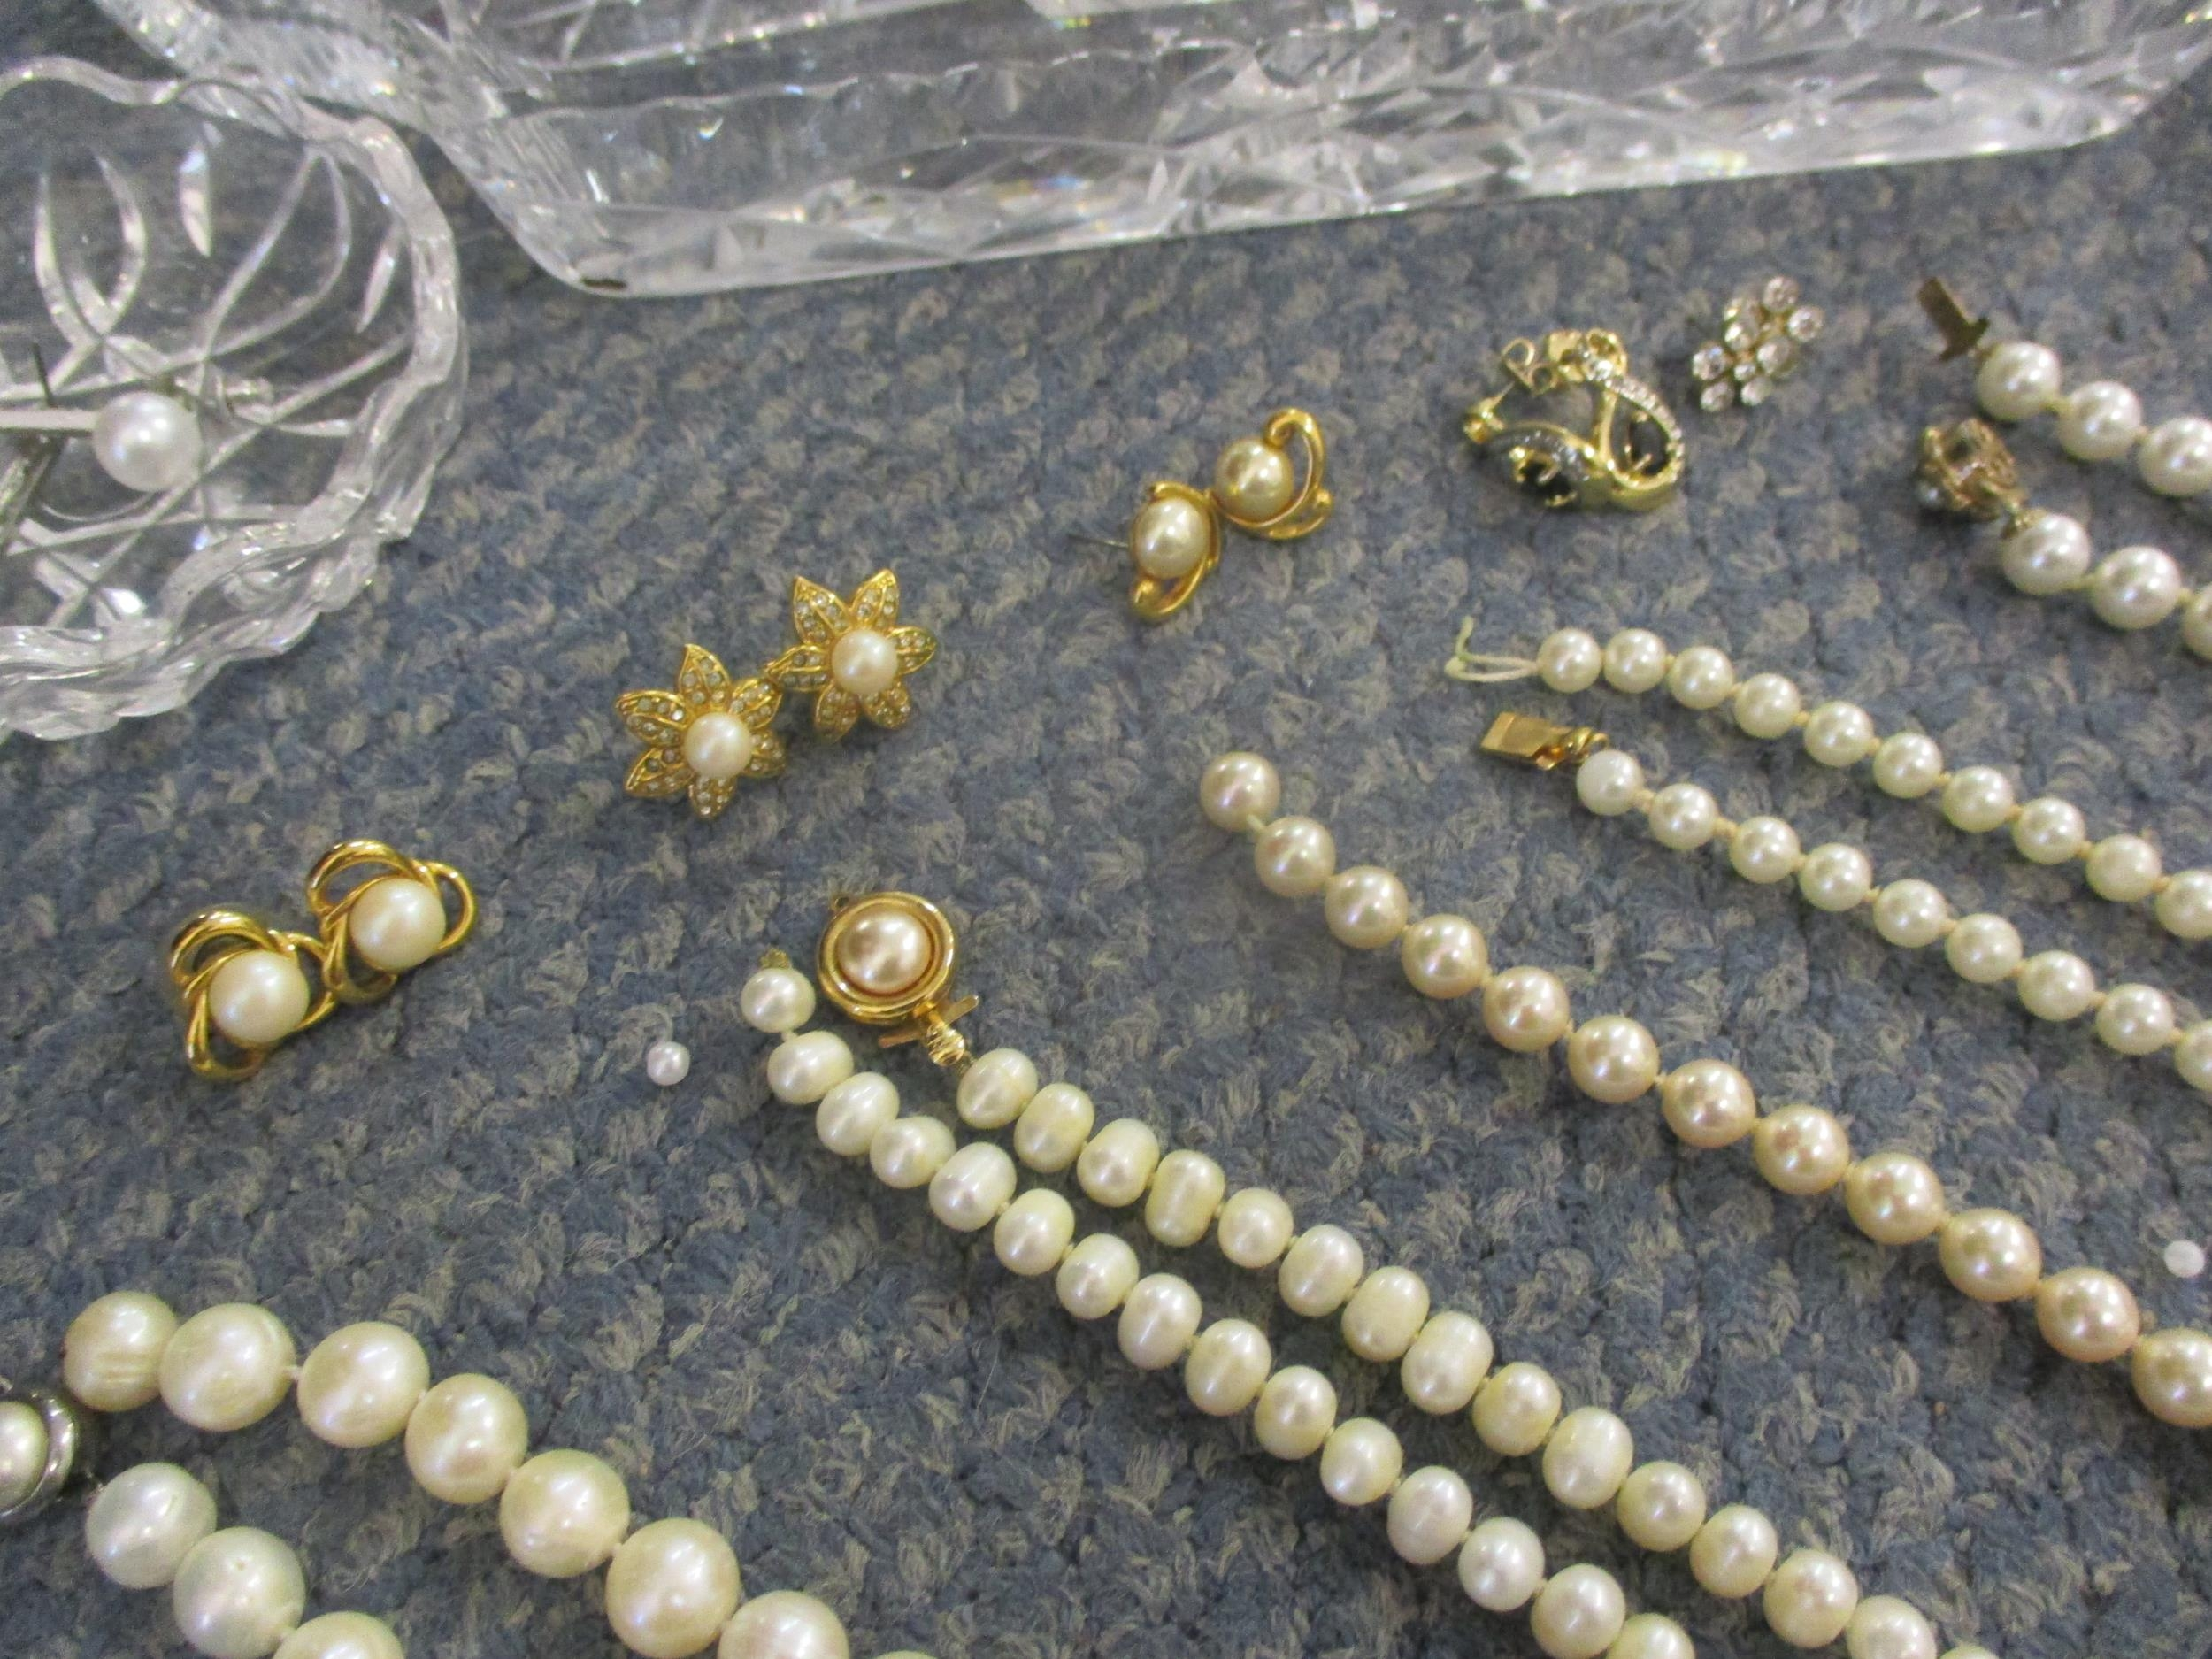 A 20th century cut glass dressing table set together with pearl and faux pearl costume jewellery - Image 2 of 3